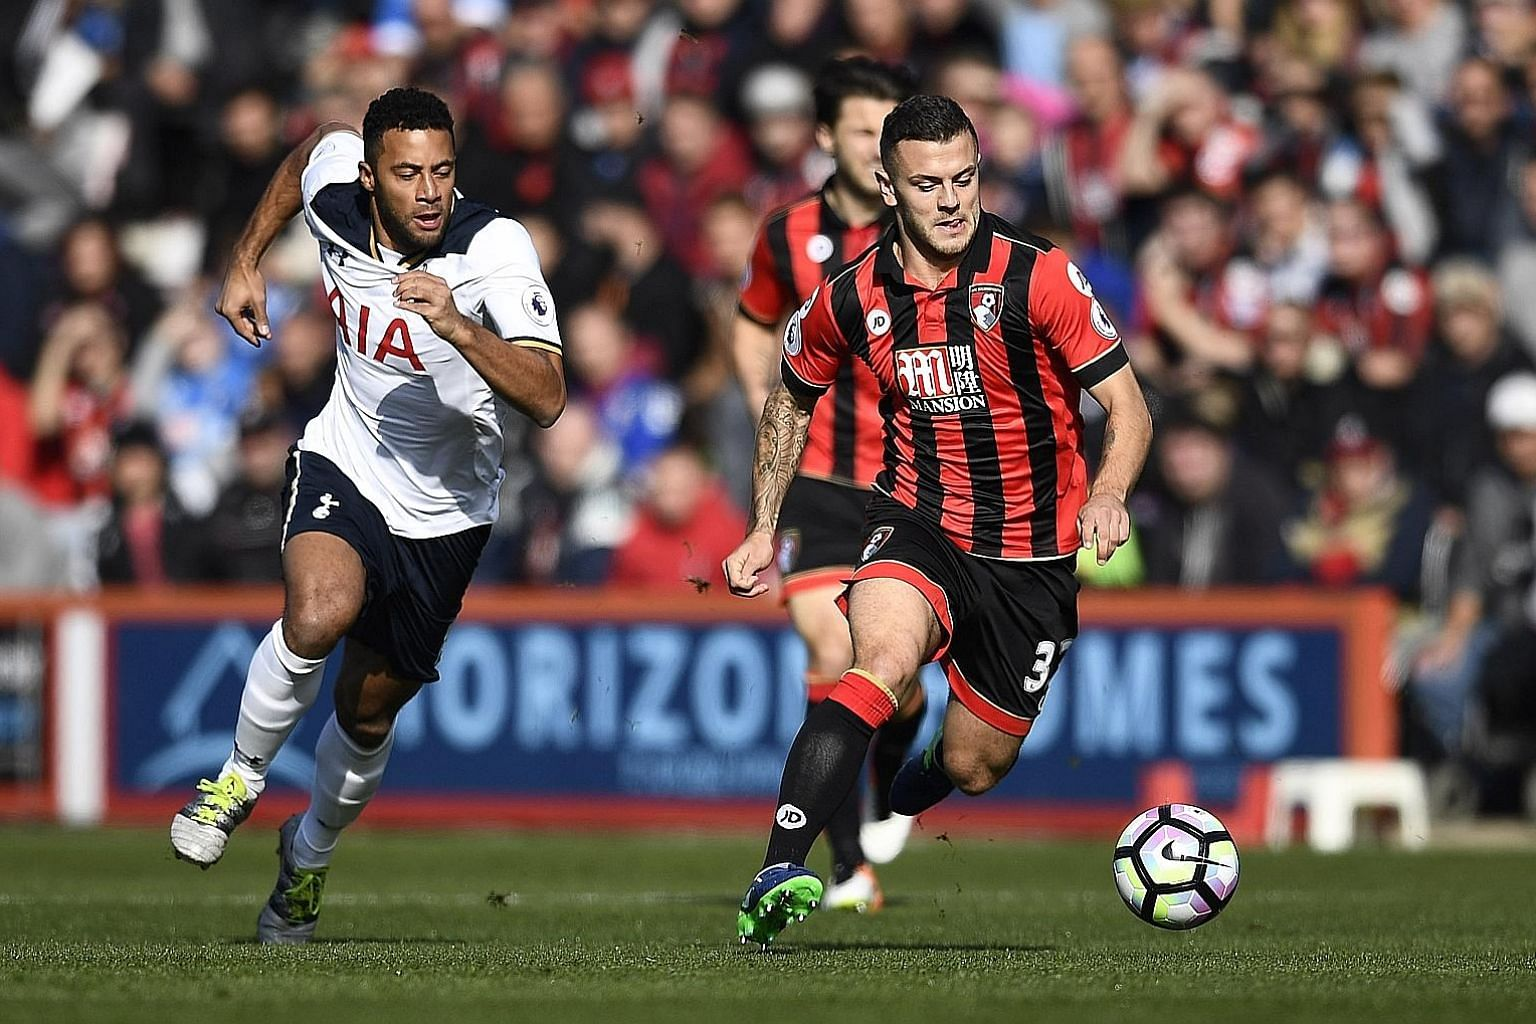 Jack Wilshere, on loan from Arsenal, on the ball for Bournemouth. He will not feature against his parent club today - as he could be the match winner for the Cherries, or make a mistake to give the Gunners three points.